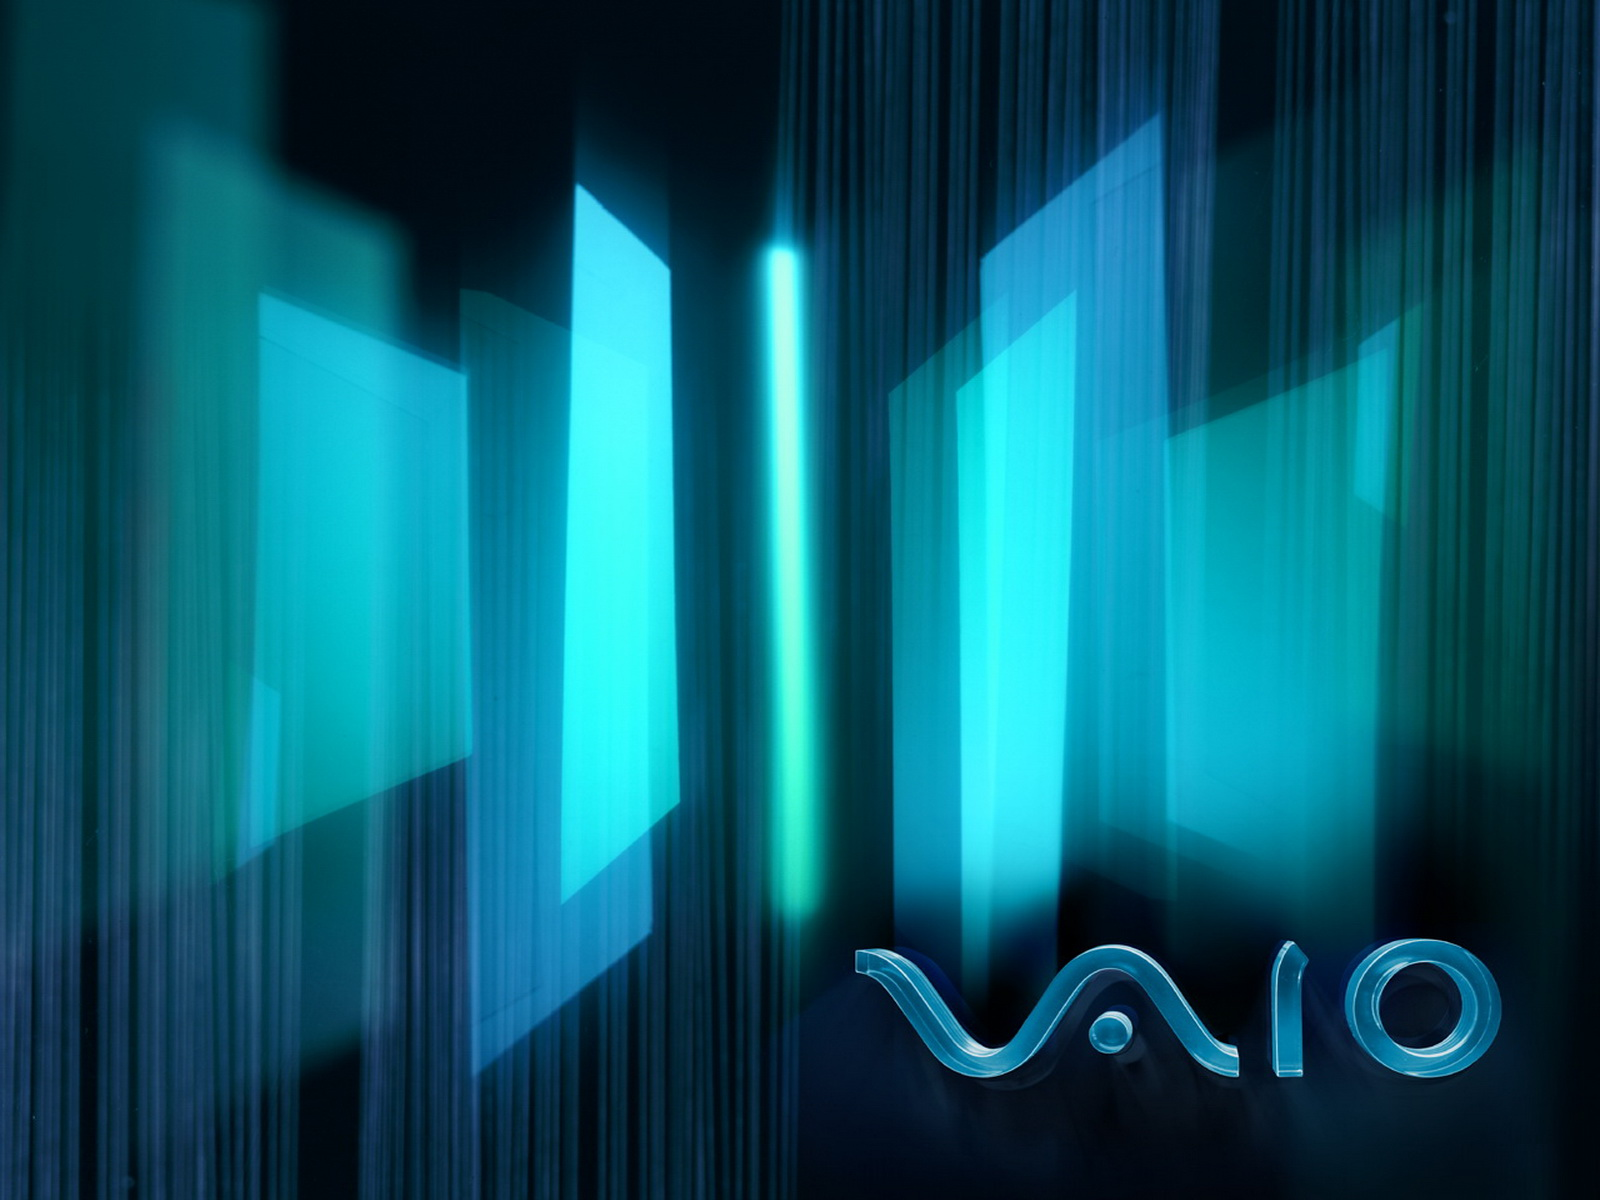 Sony vaio wallpaper 1600x900